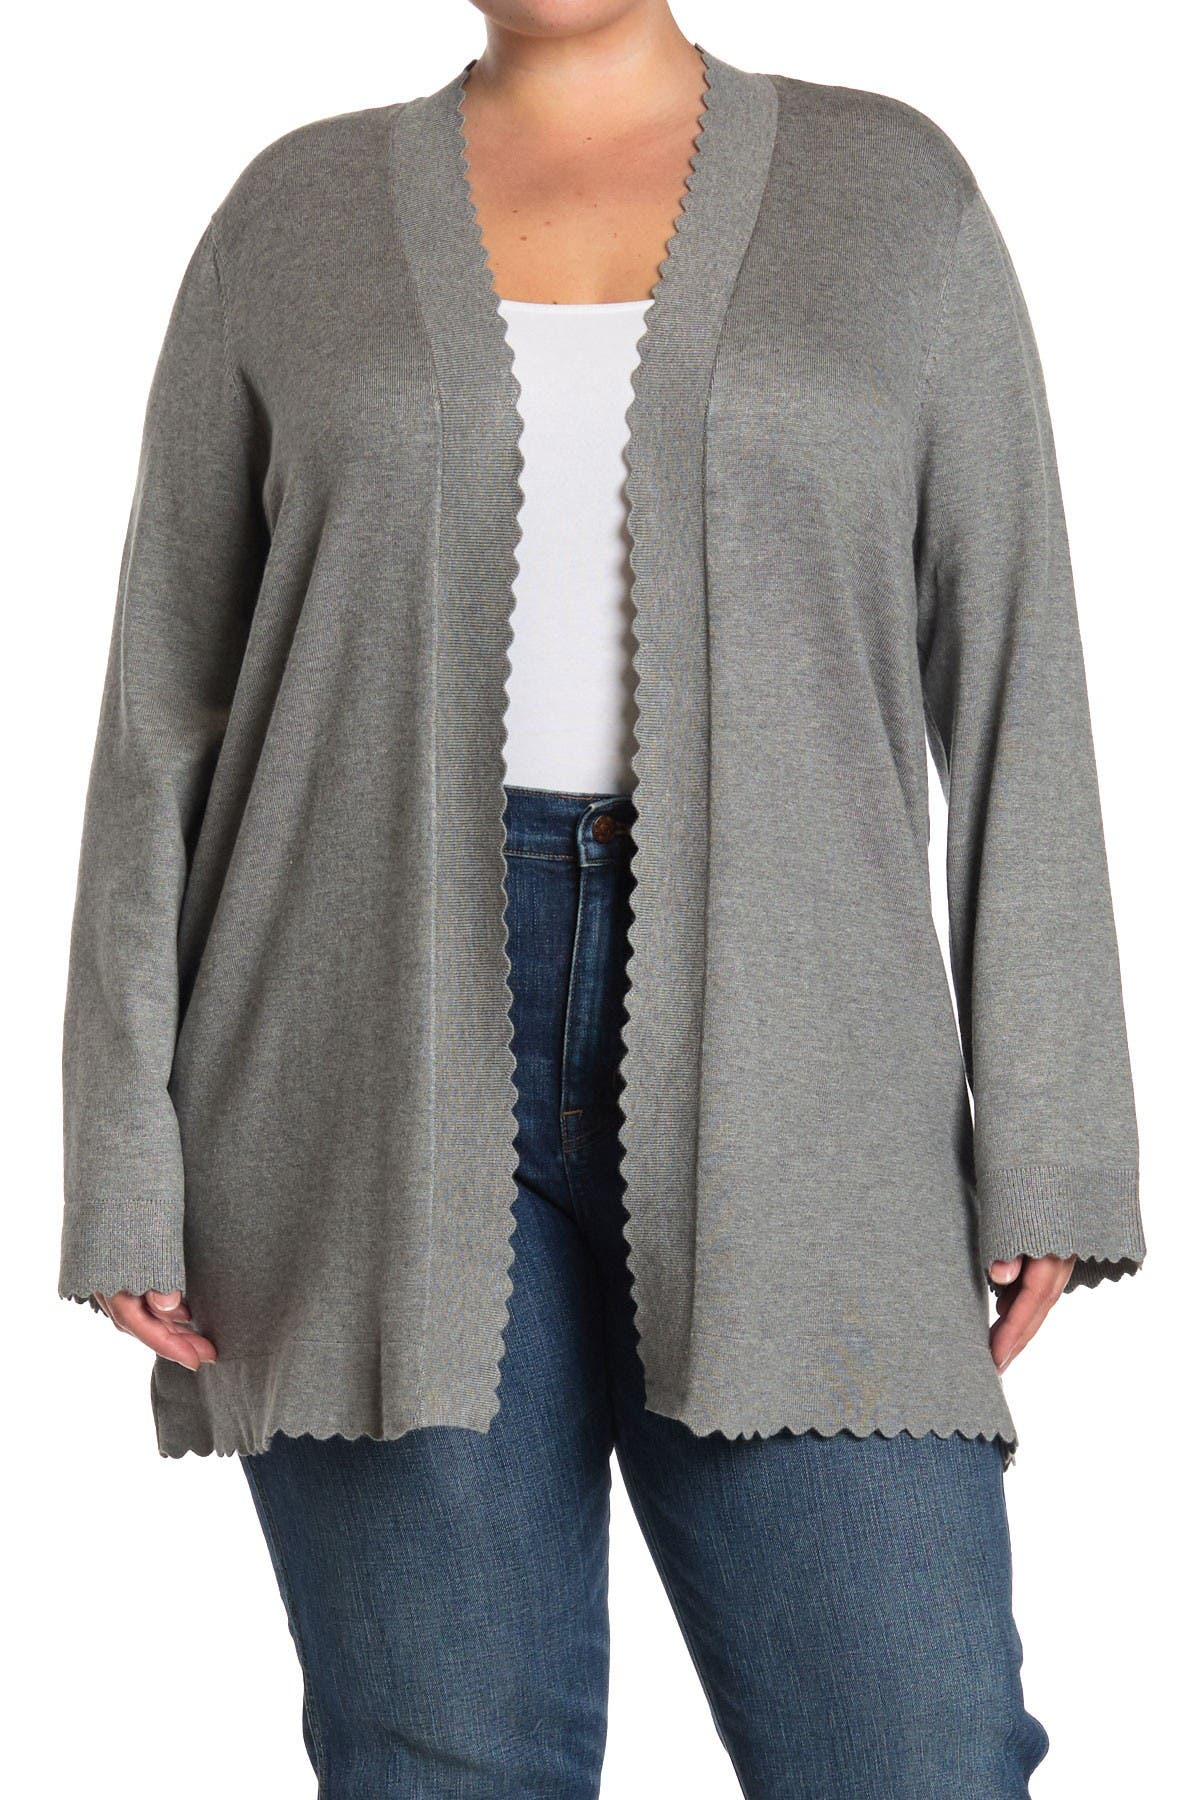 Image of Cyrus Scalloped Edge Open Front Cardigan